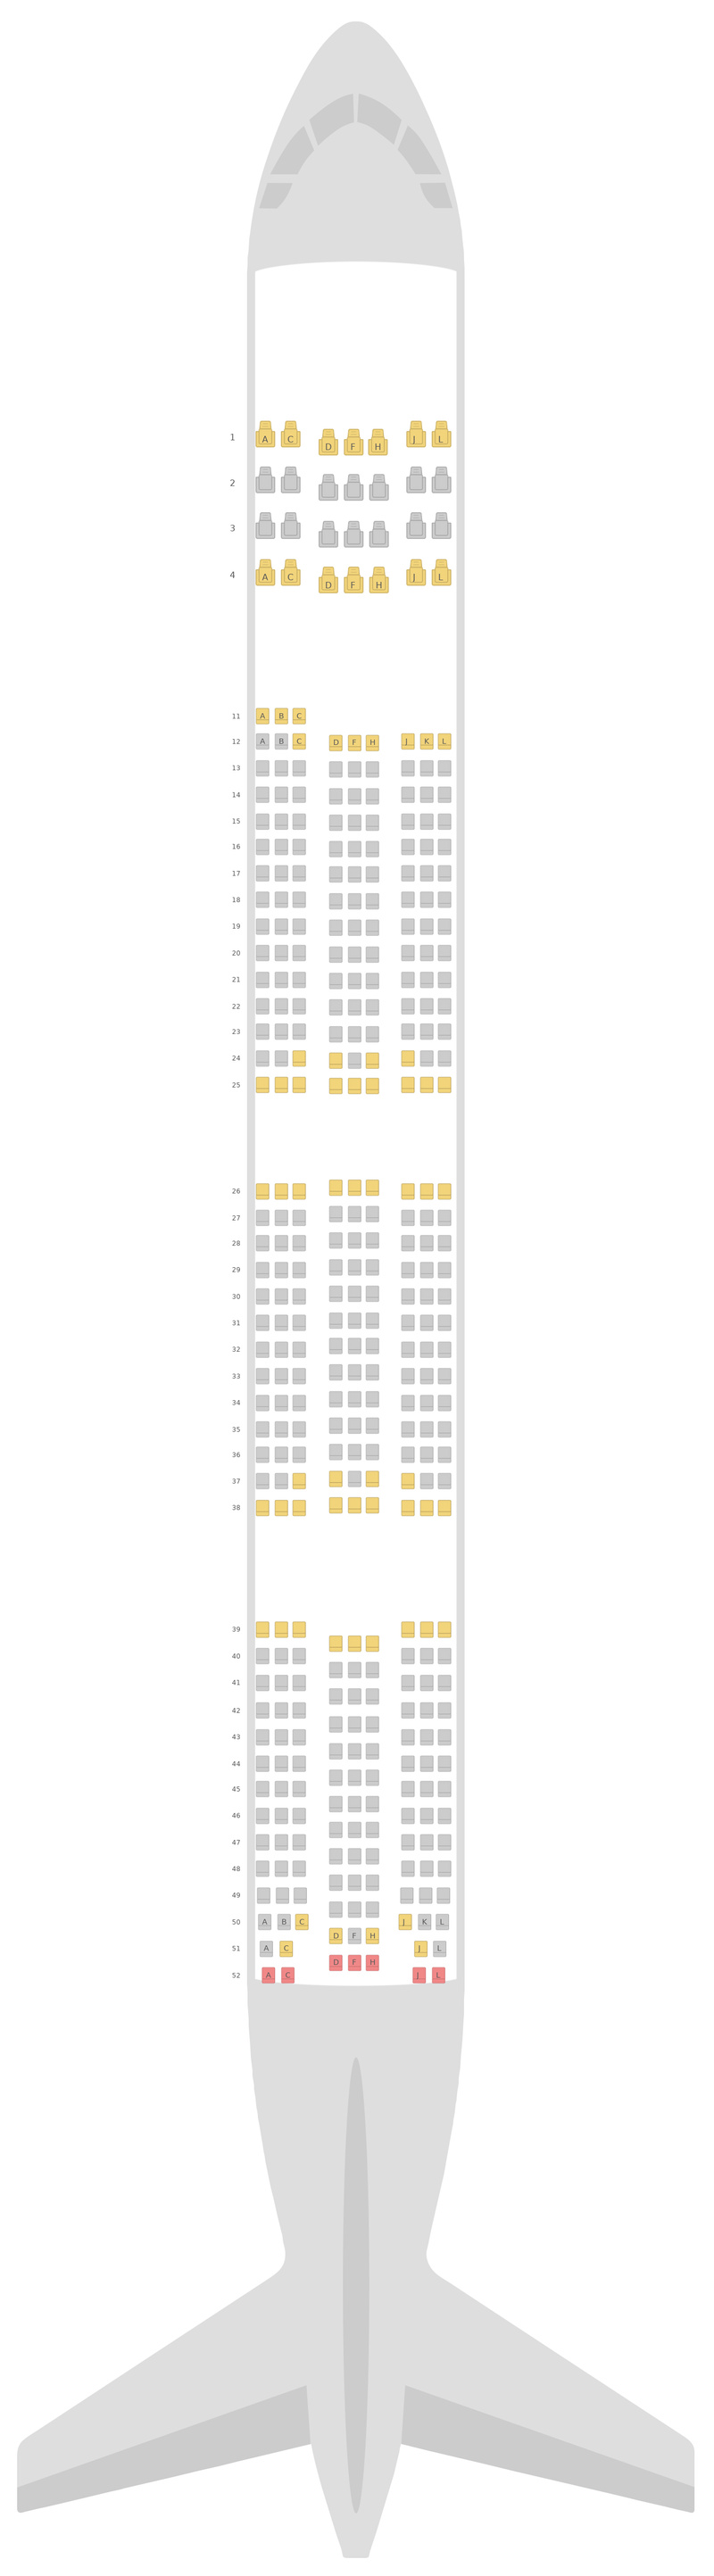 Seat Map Ethiopian Airlines Boeing 777-300ER (77W)